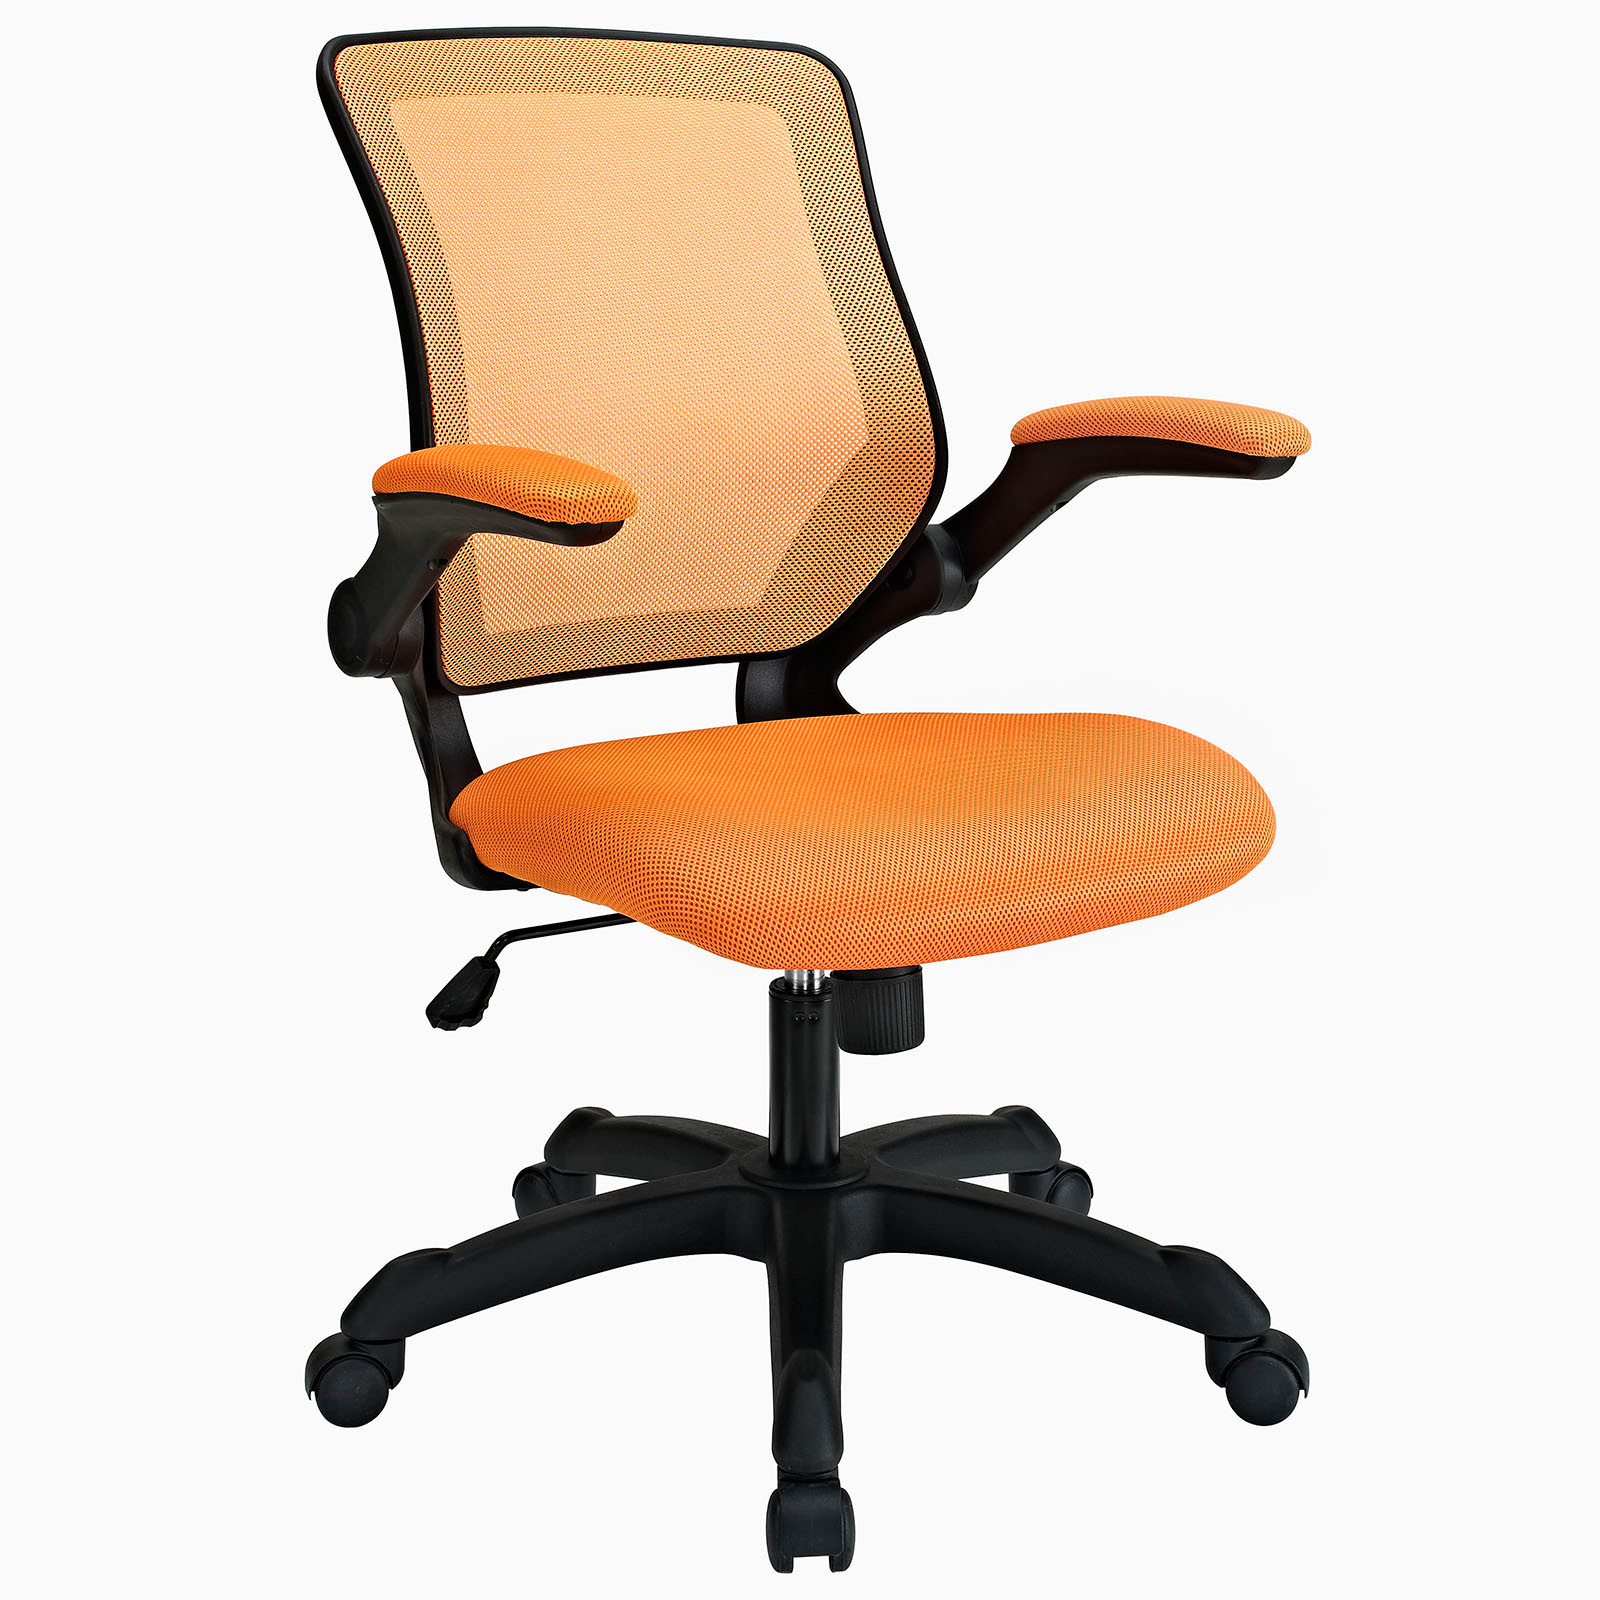 office chair deals - discount chairs - office furniture chairs